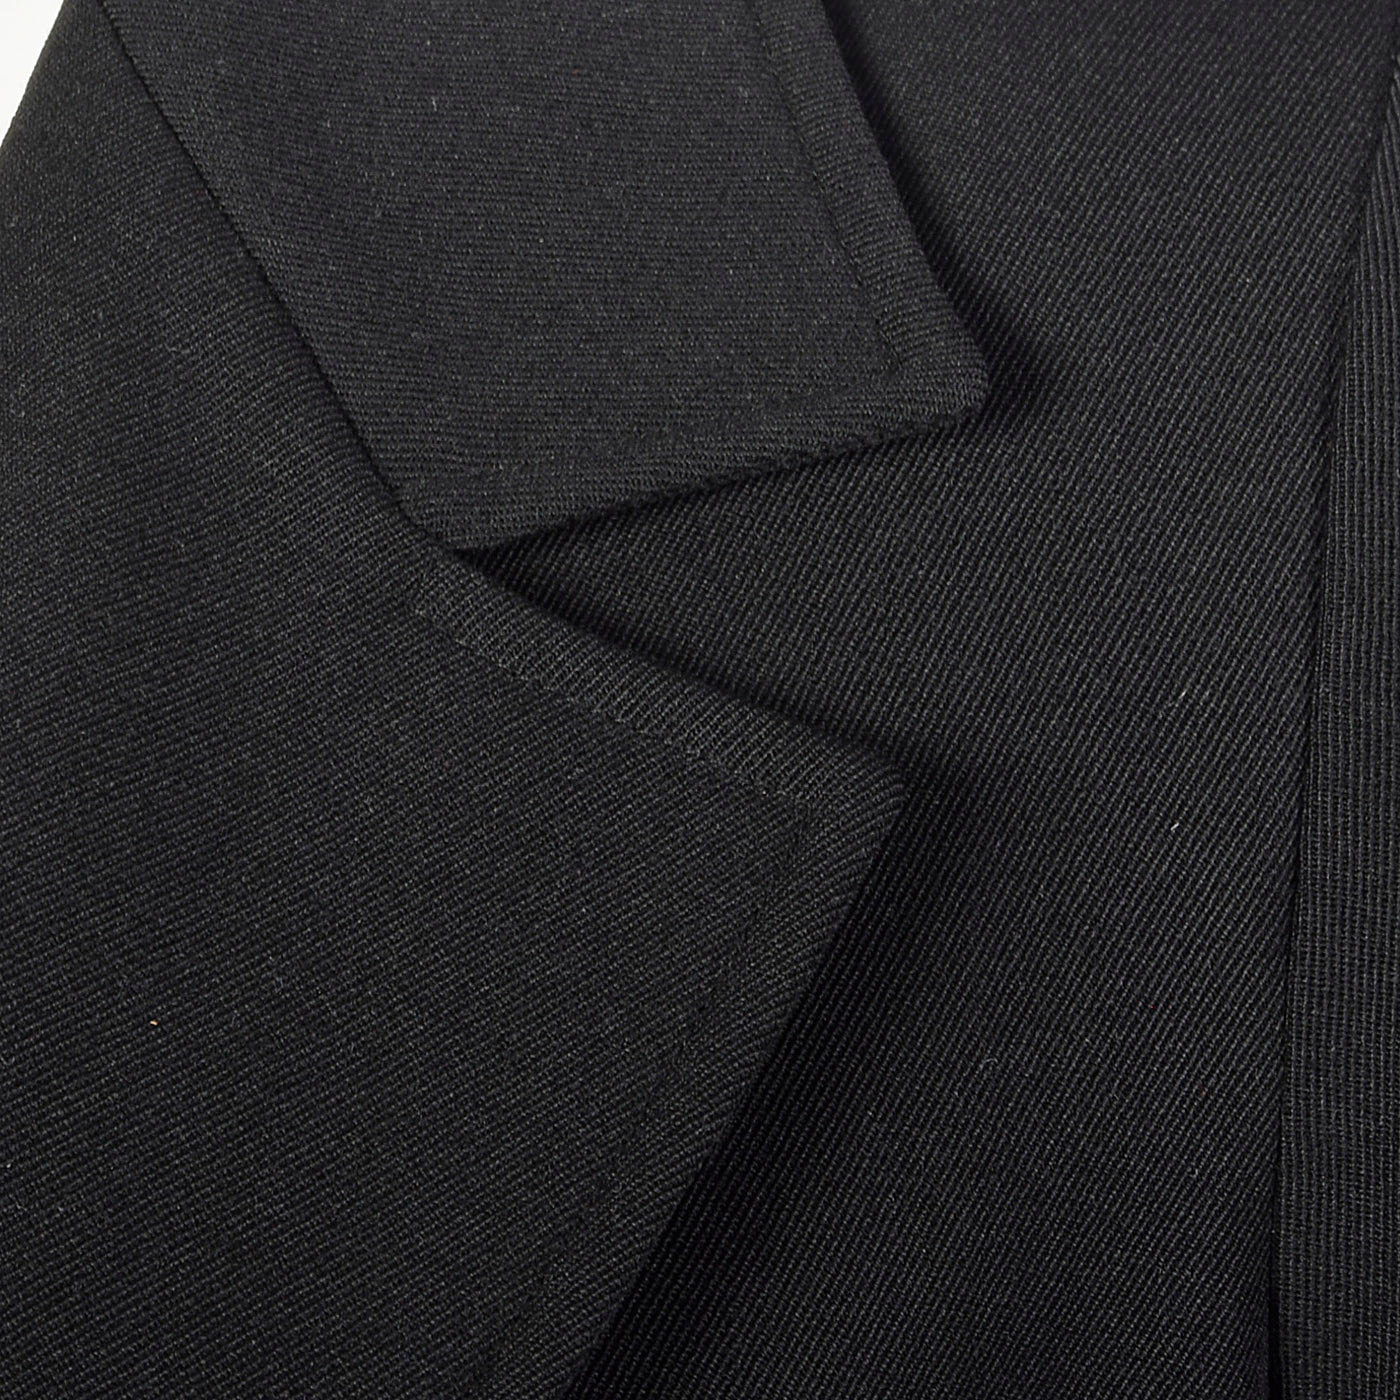 1970s Yves Saint Laurent Rive Gauche Black Twill Blazer